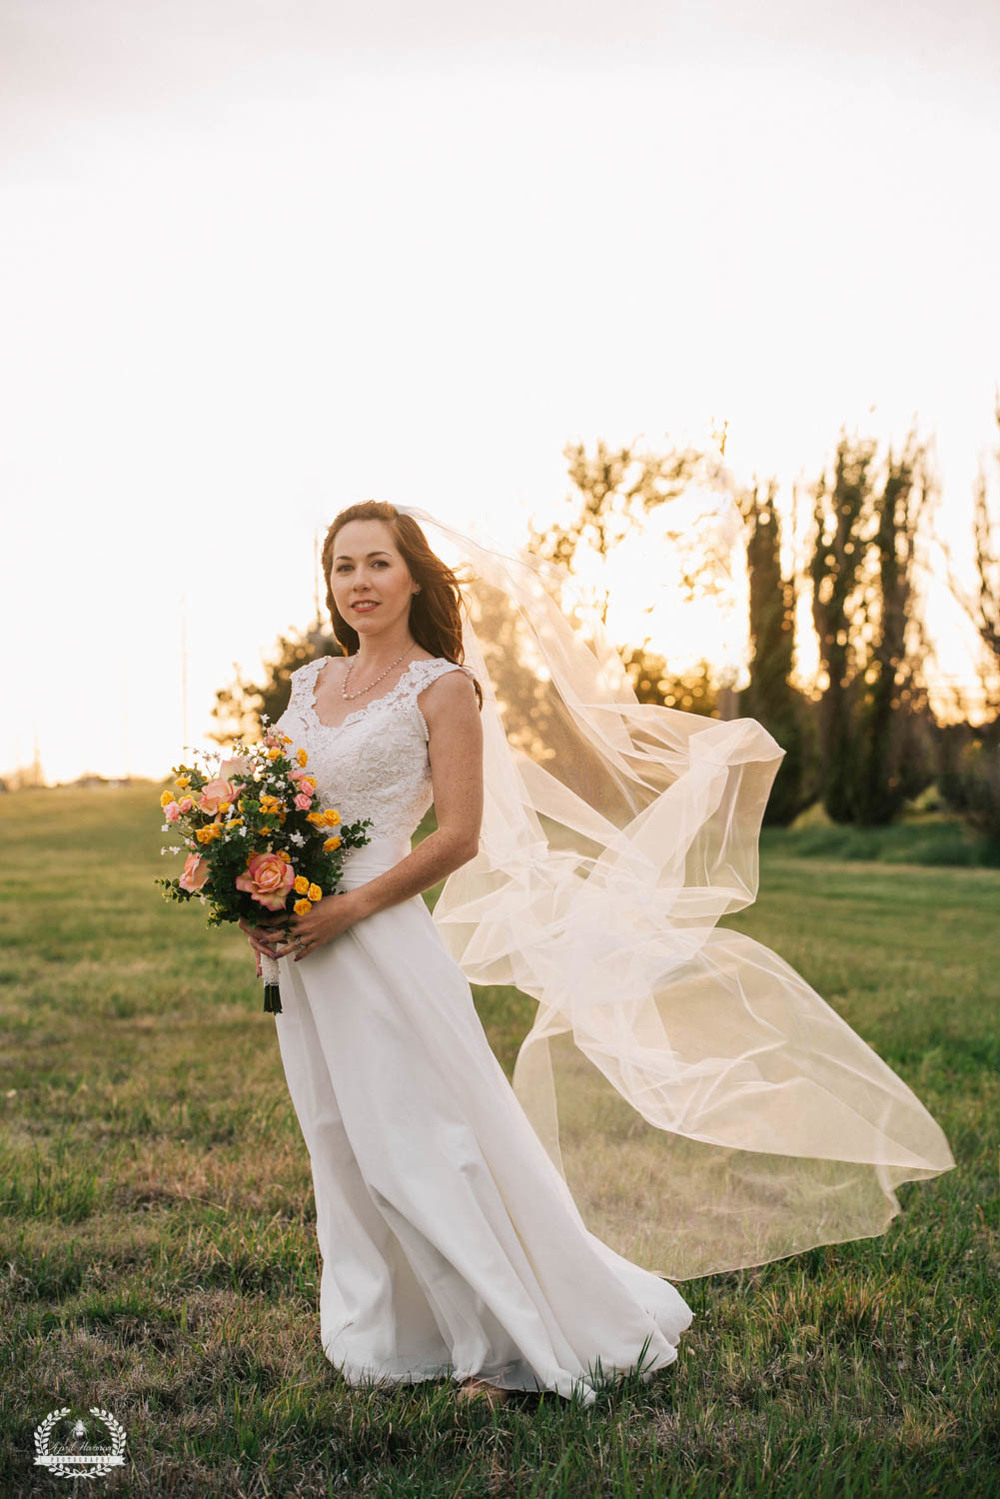 wedding-photography-southwest-kansas10.jpg